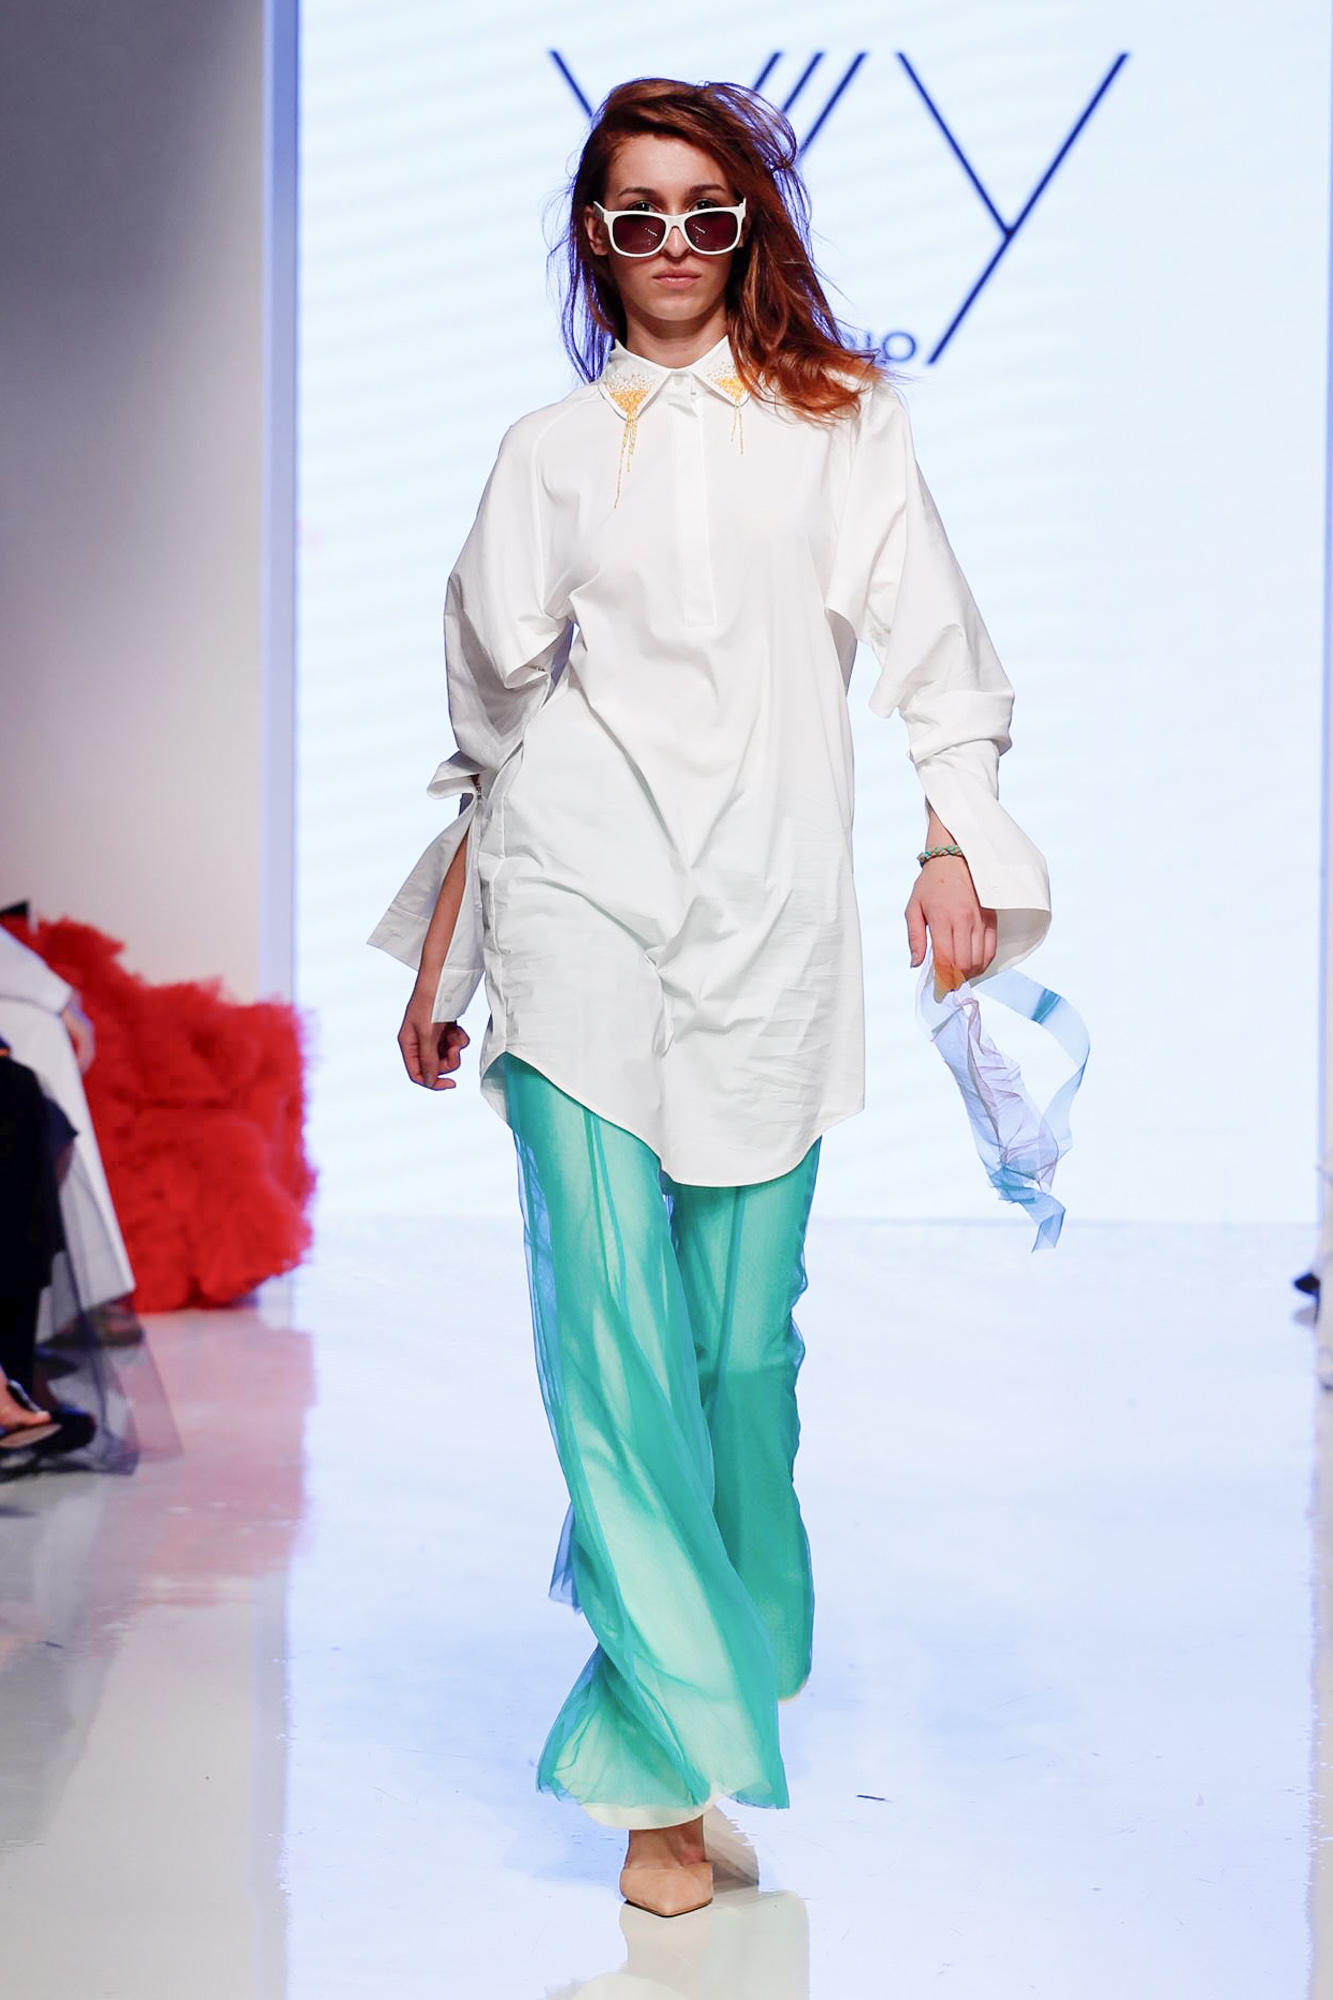 YLY-Studio-Arab-Fashion-Week-SS20-Dubai-5791